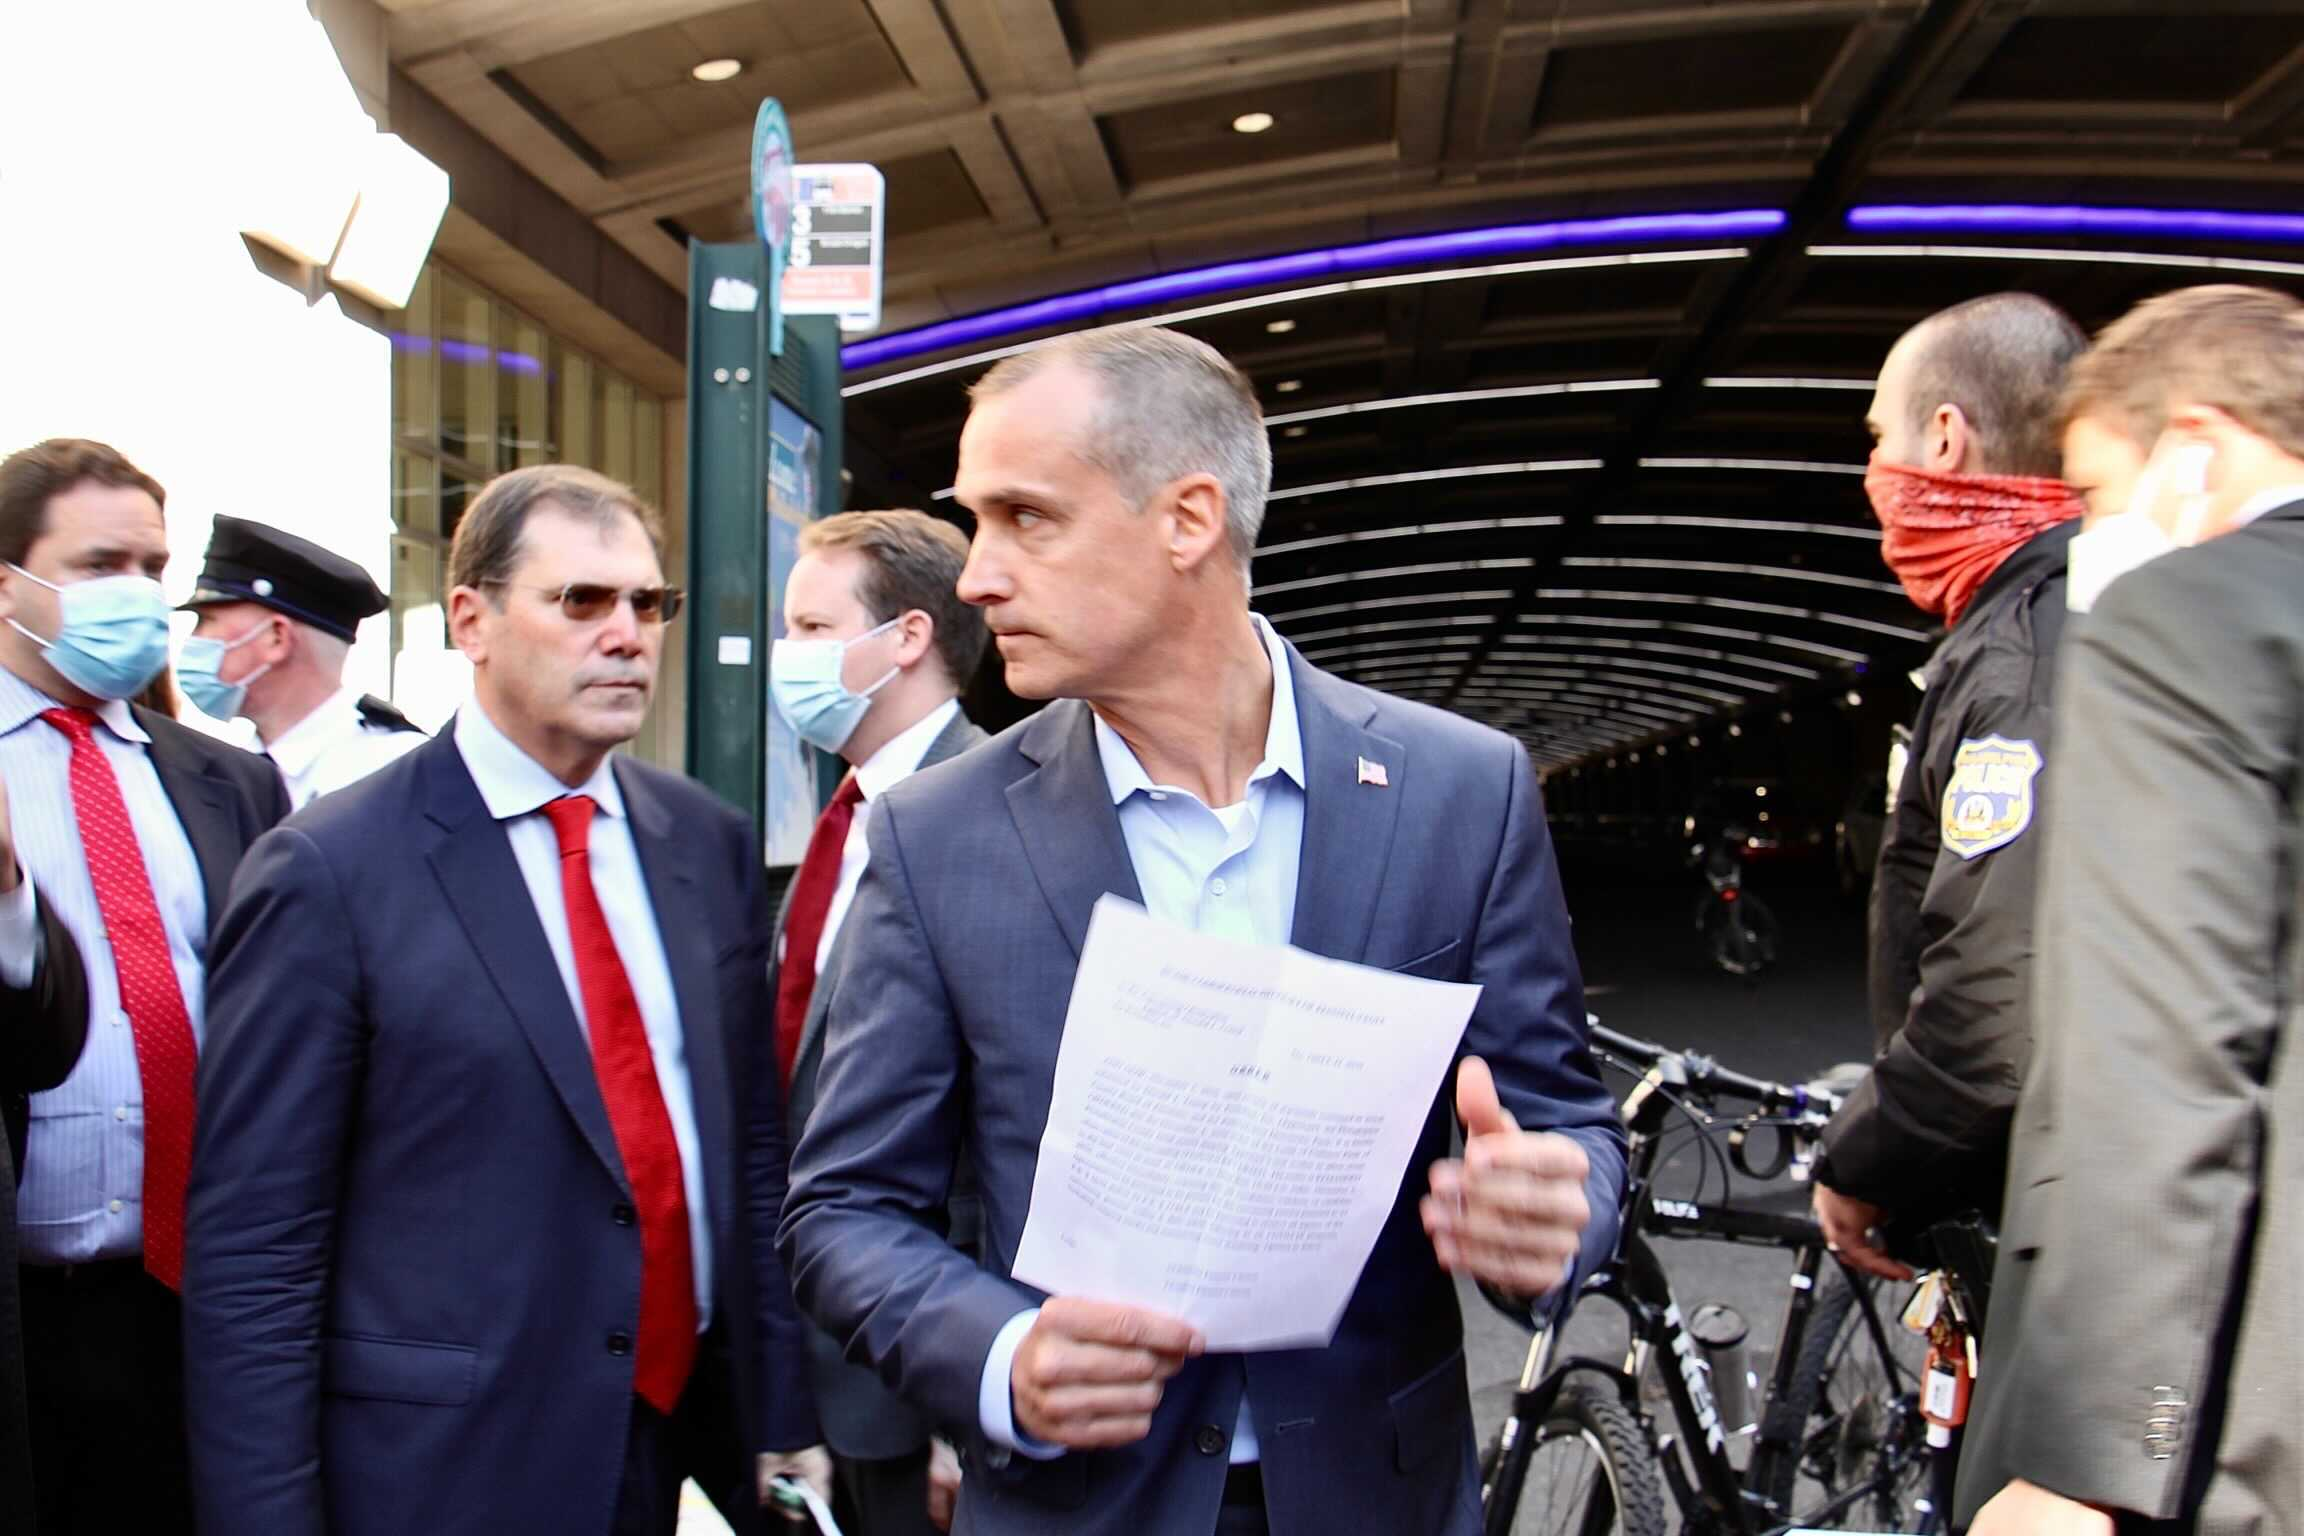 Trump operative Corey Lewandowski addresses reporters at Pennsylvania Convention Center, where Philadelphia votes are being counted, while armed with what appears to be a court order.